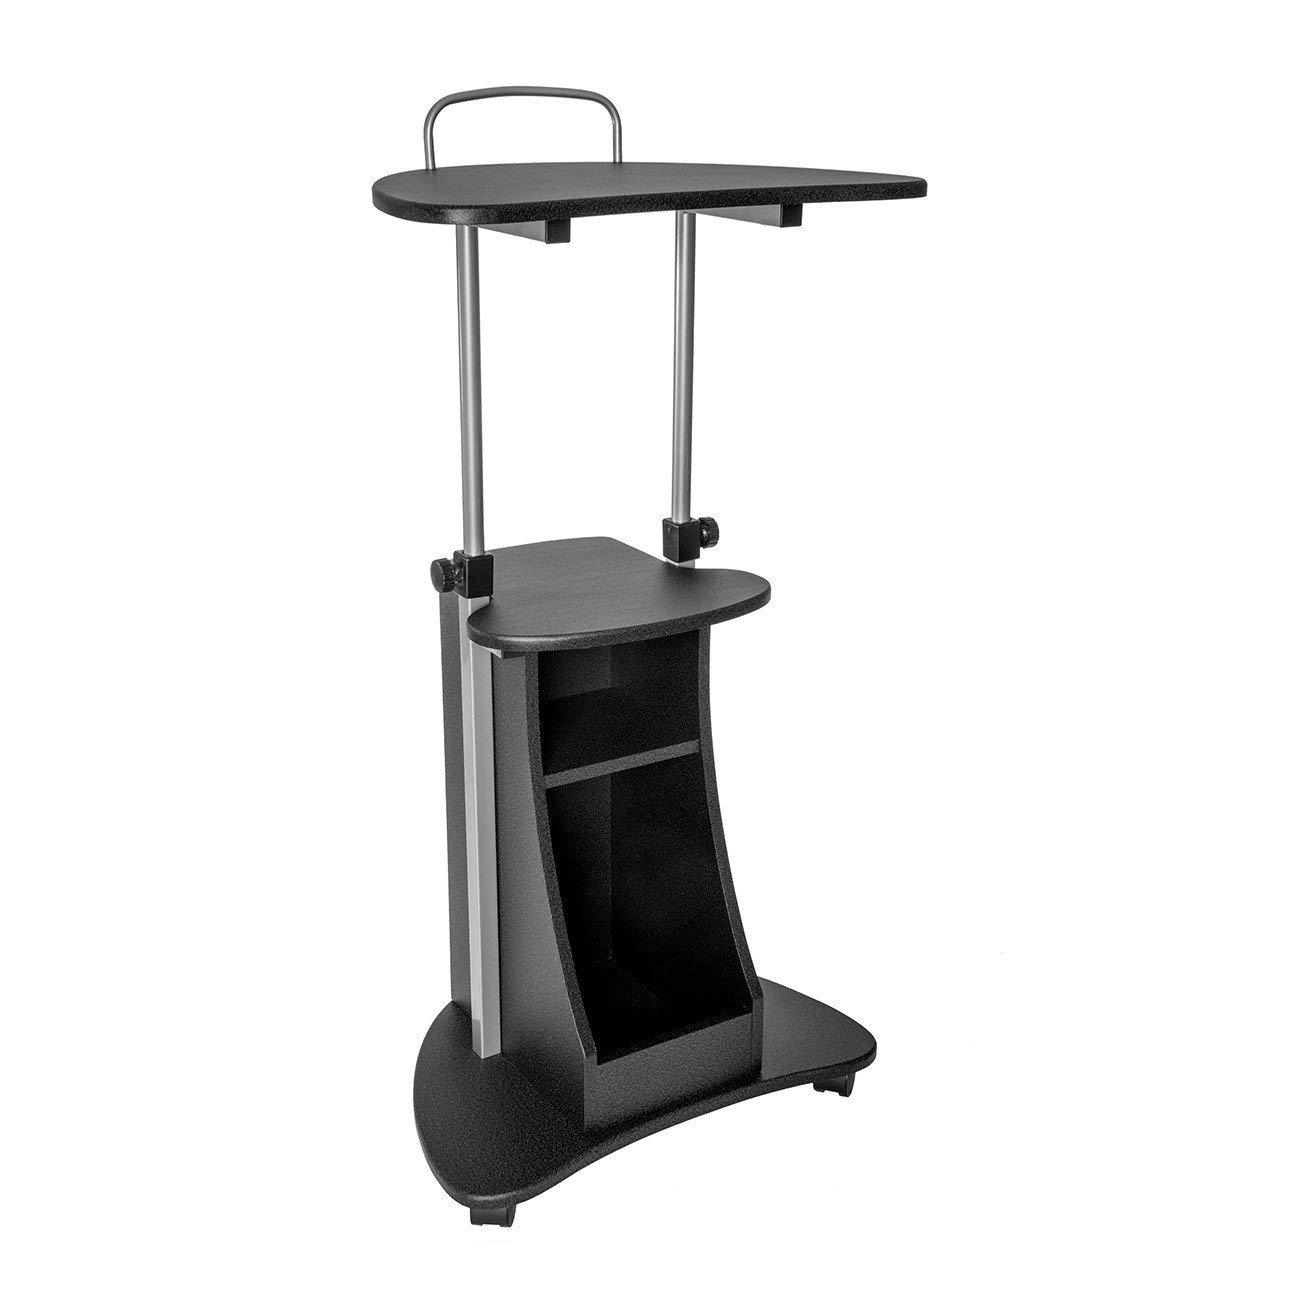 Techni Mobili RTA-B002-GPH06 Sit-to-Stand Rolling Adjustable Height Laptop Cart with Storage, Graphite by Techni Mobili